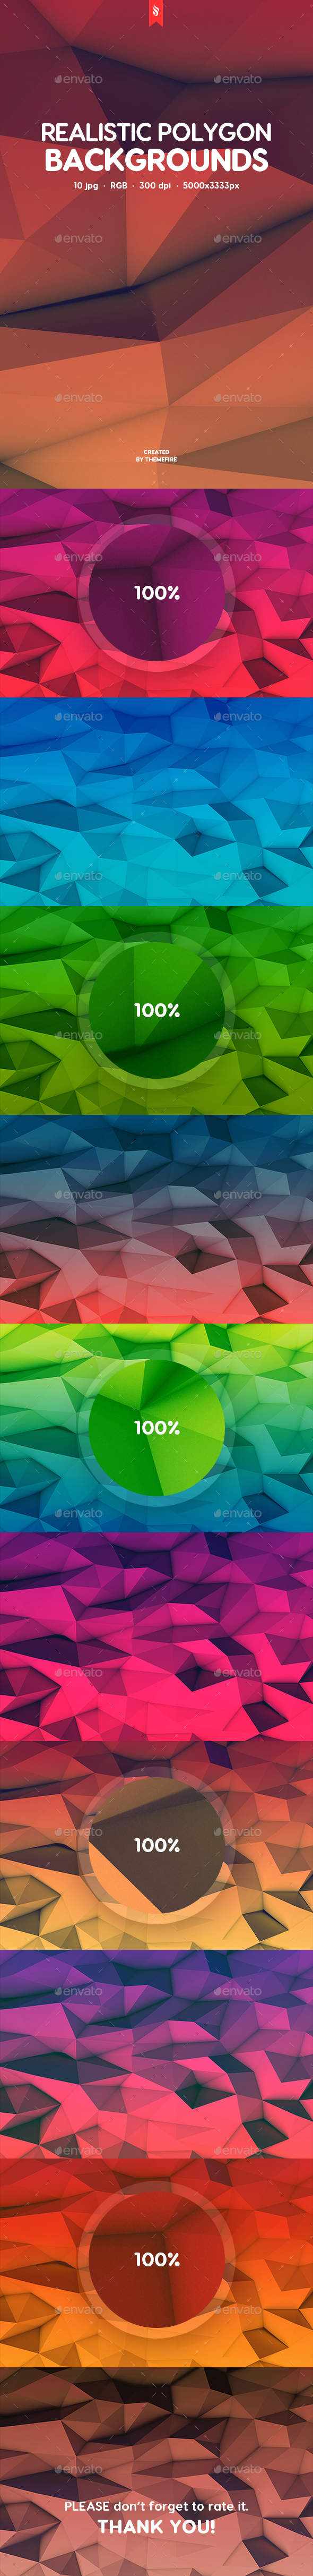 Realistic Polygon Backgrounds - Abstract Backgrounds